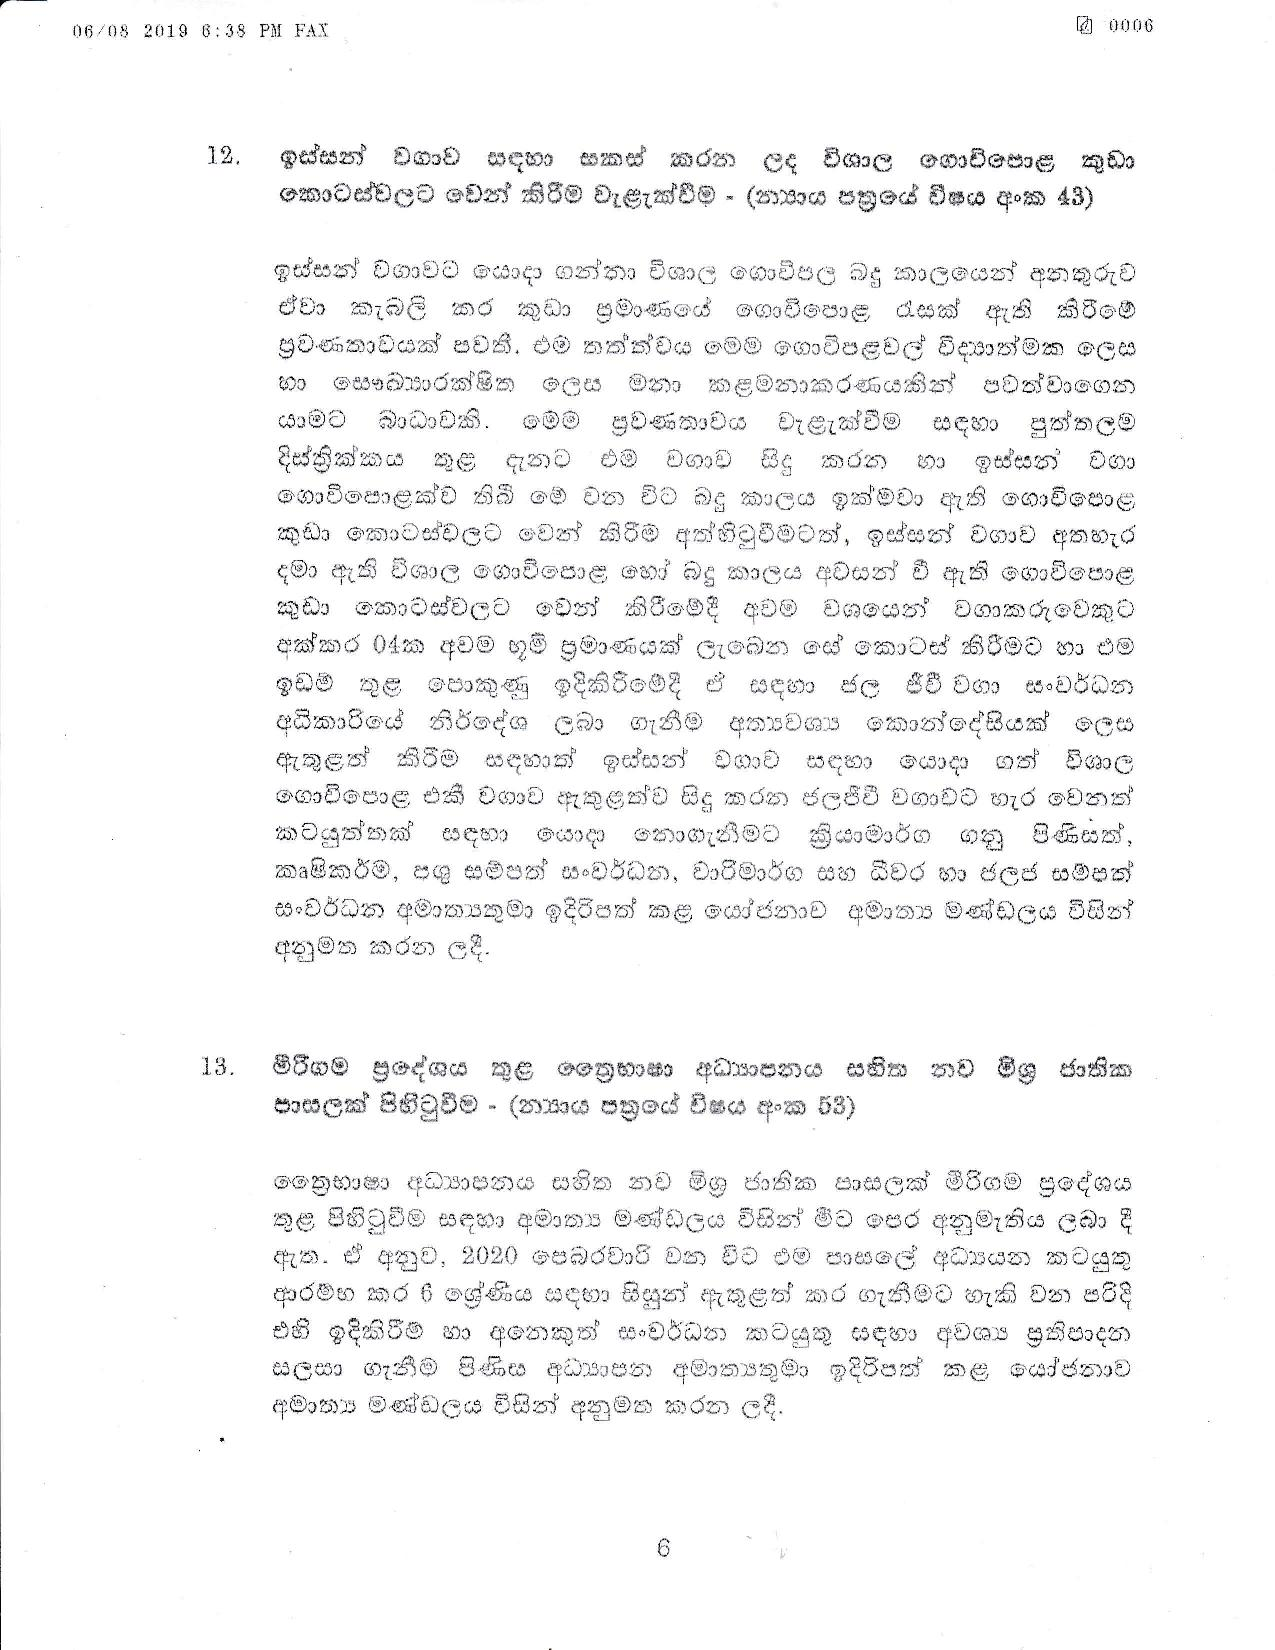 Cabinet Decision on 06.08.2019 Full Document page 006